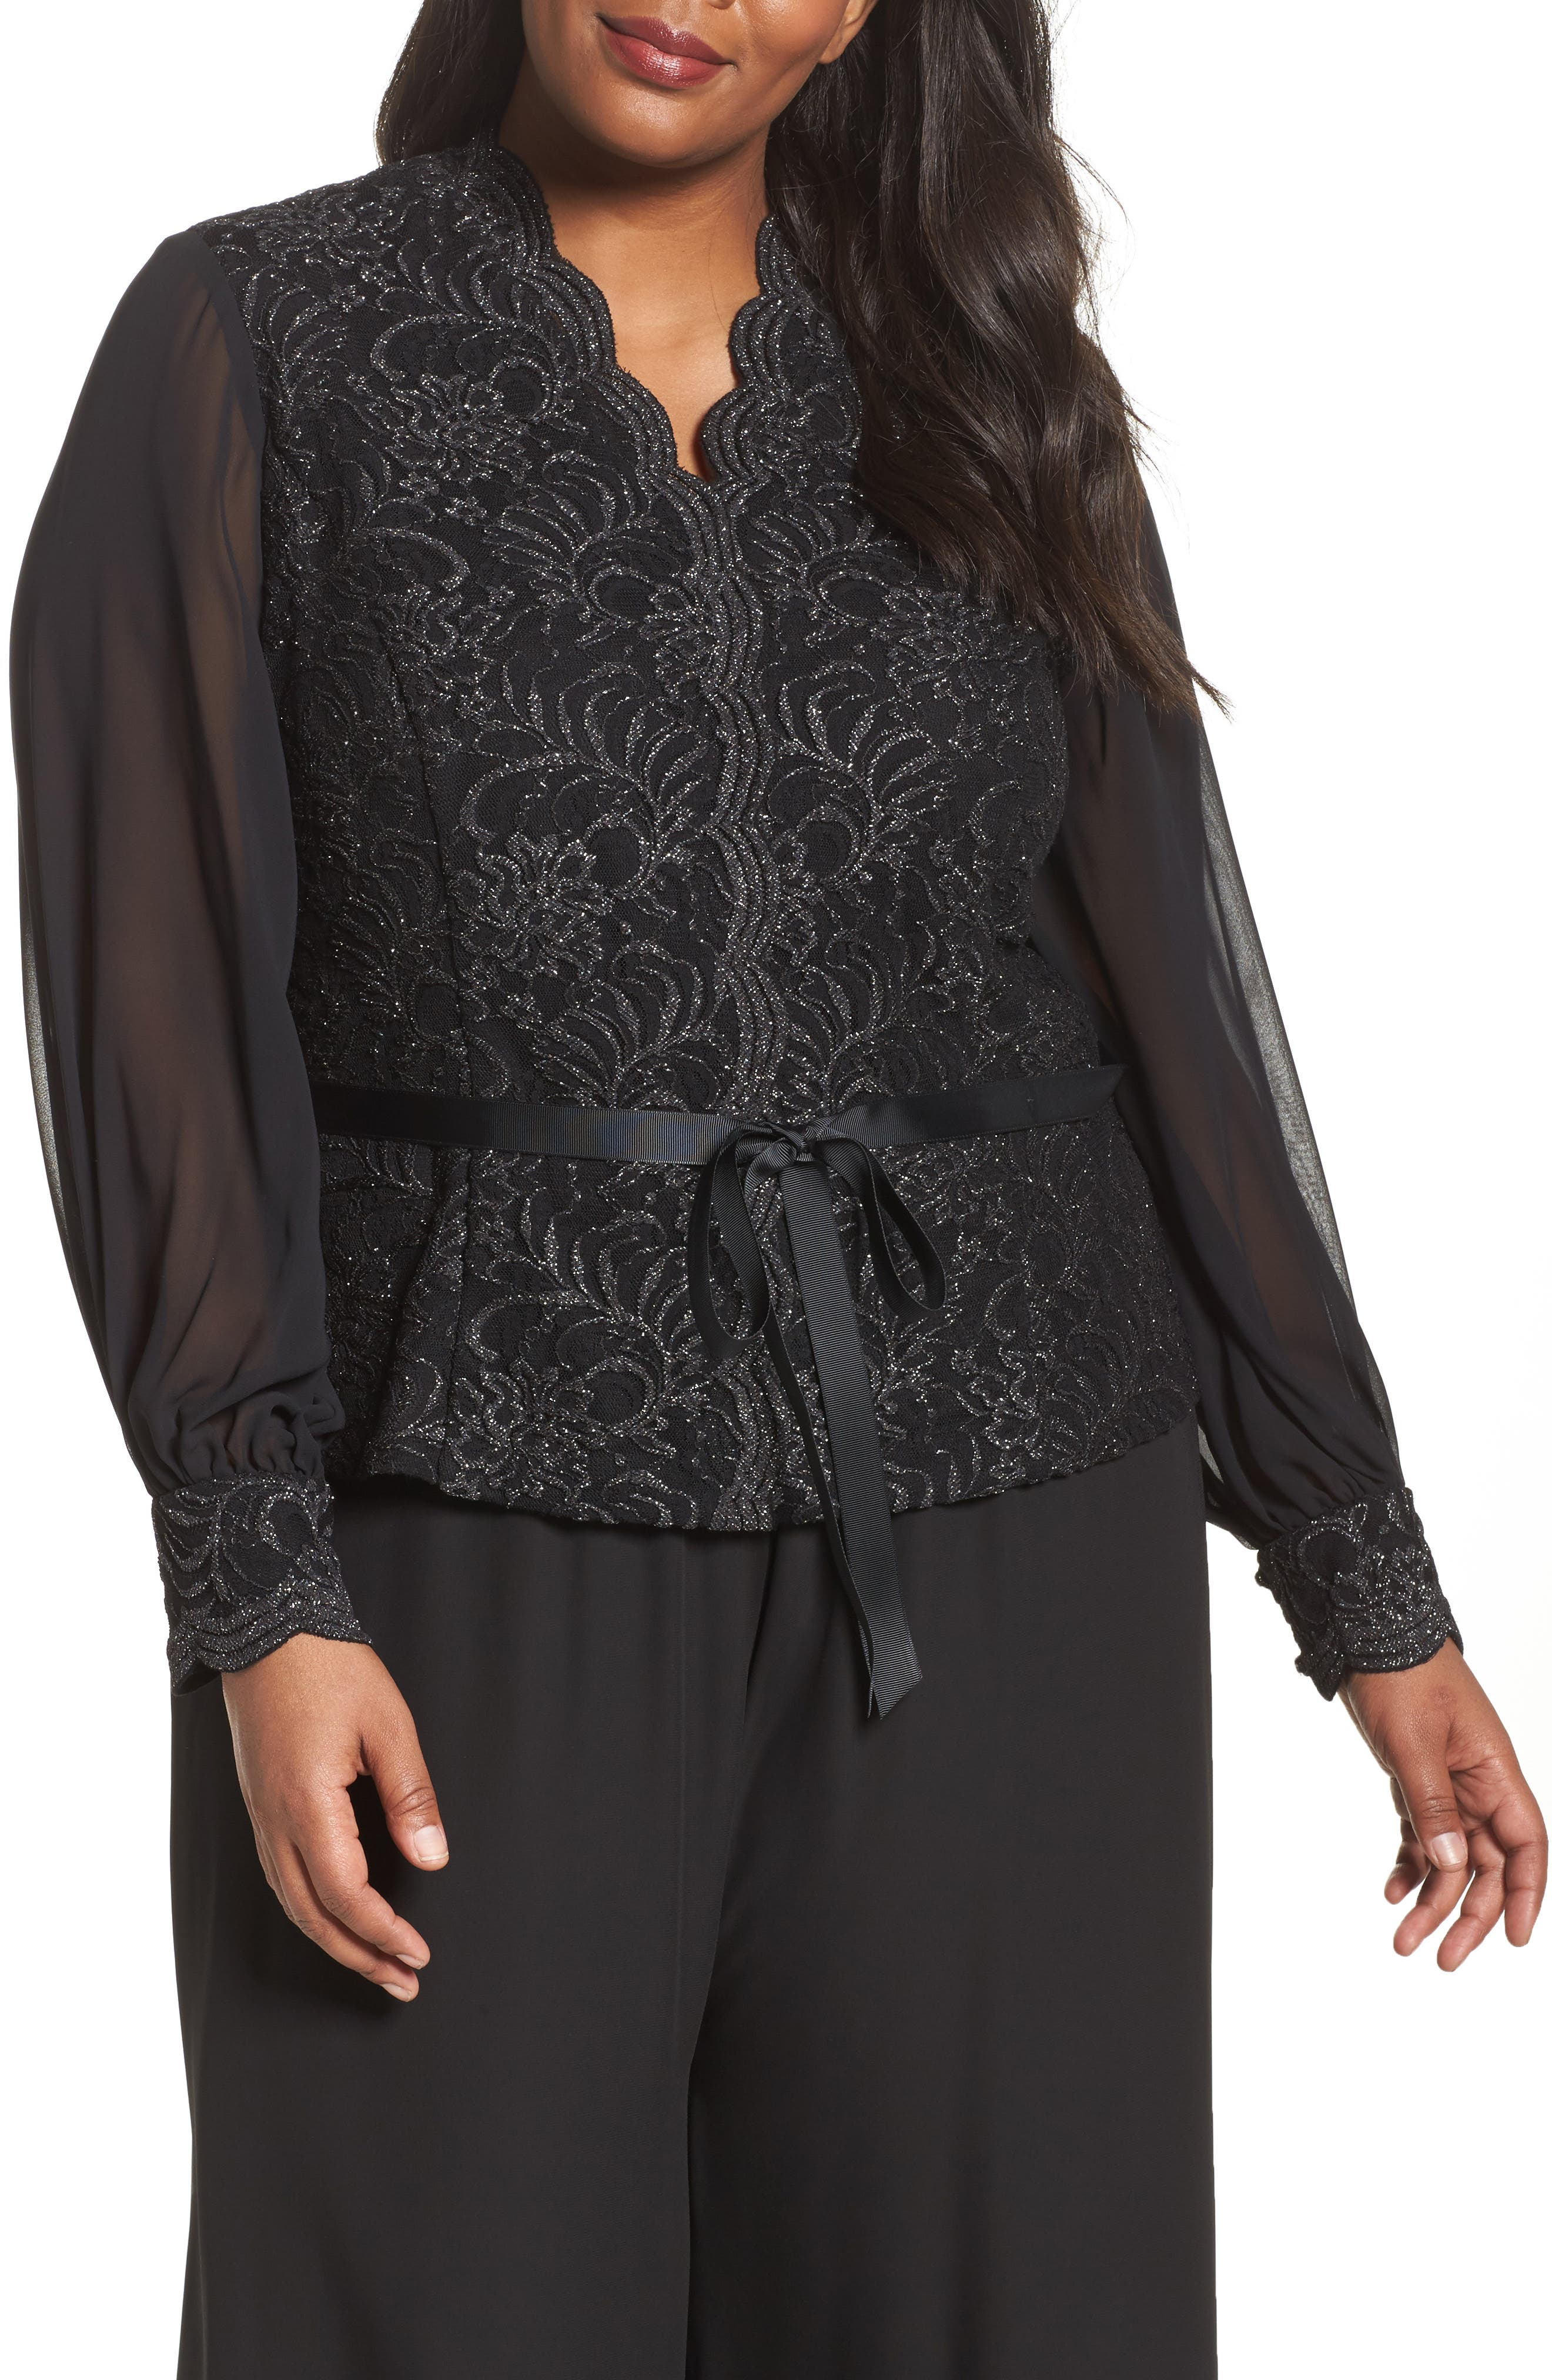 Alternate Image 1 Selected - Alex Evenings Sequin Lace Blouse with Tie Waist (Plus Size)